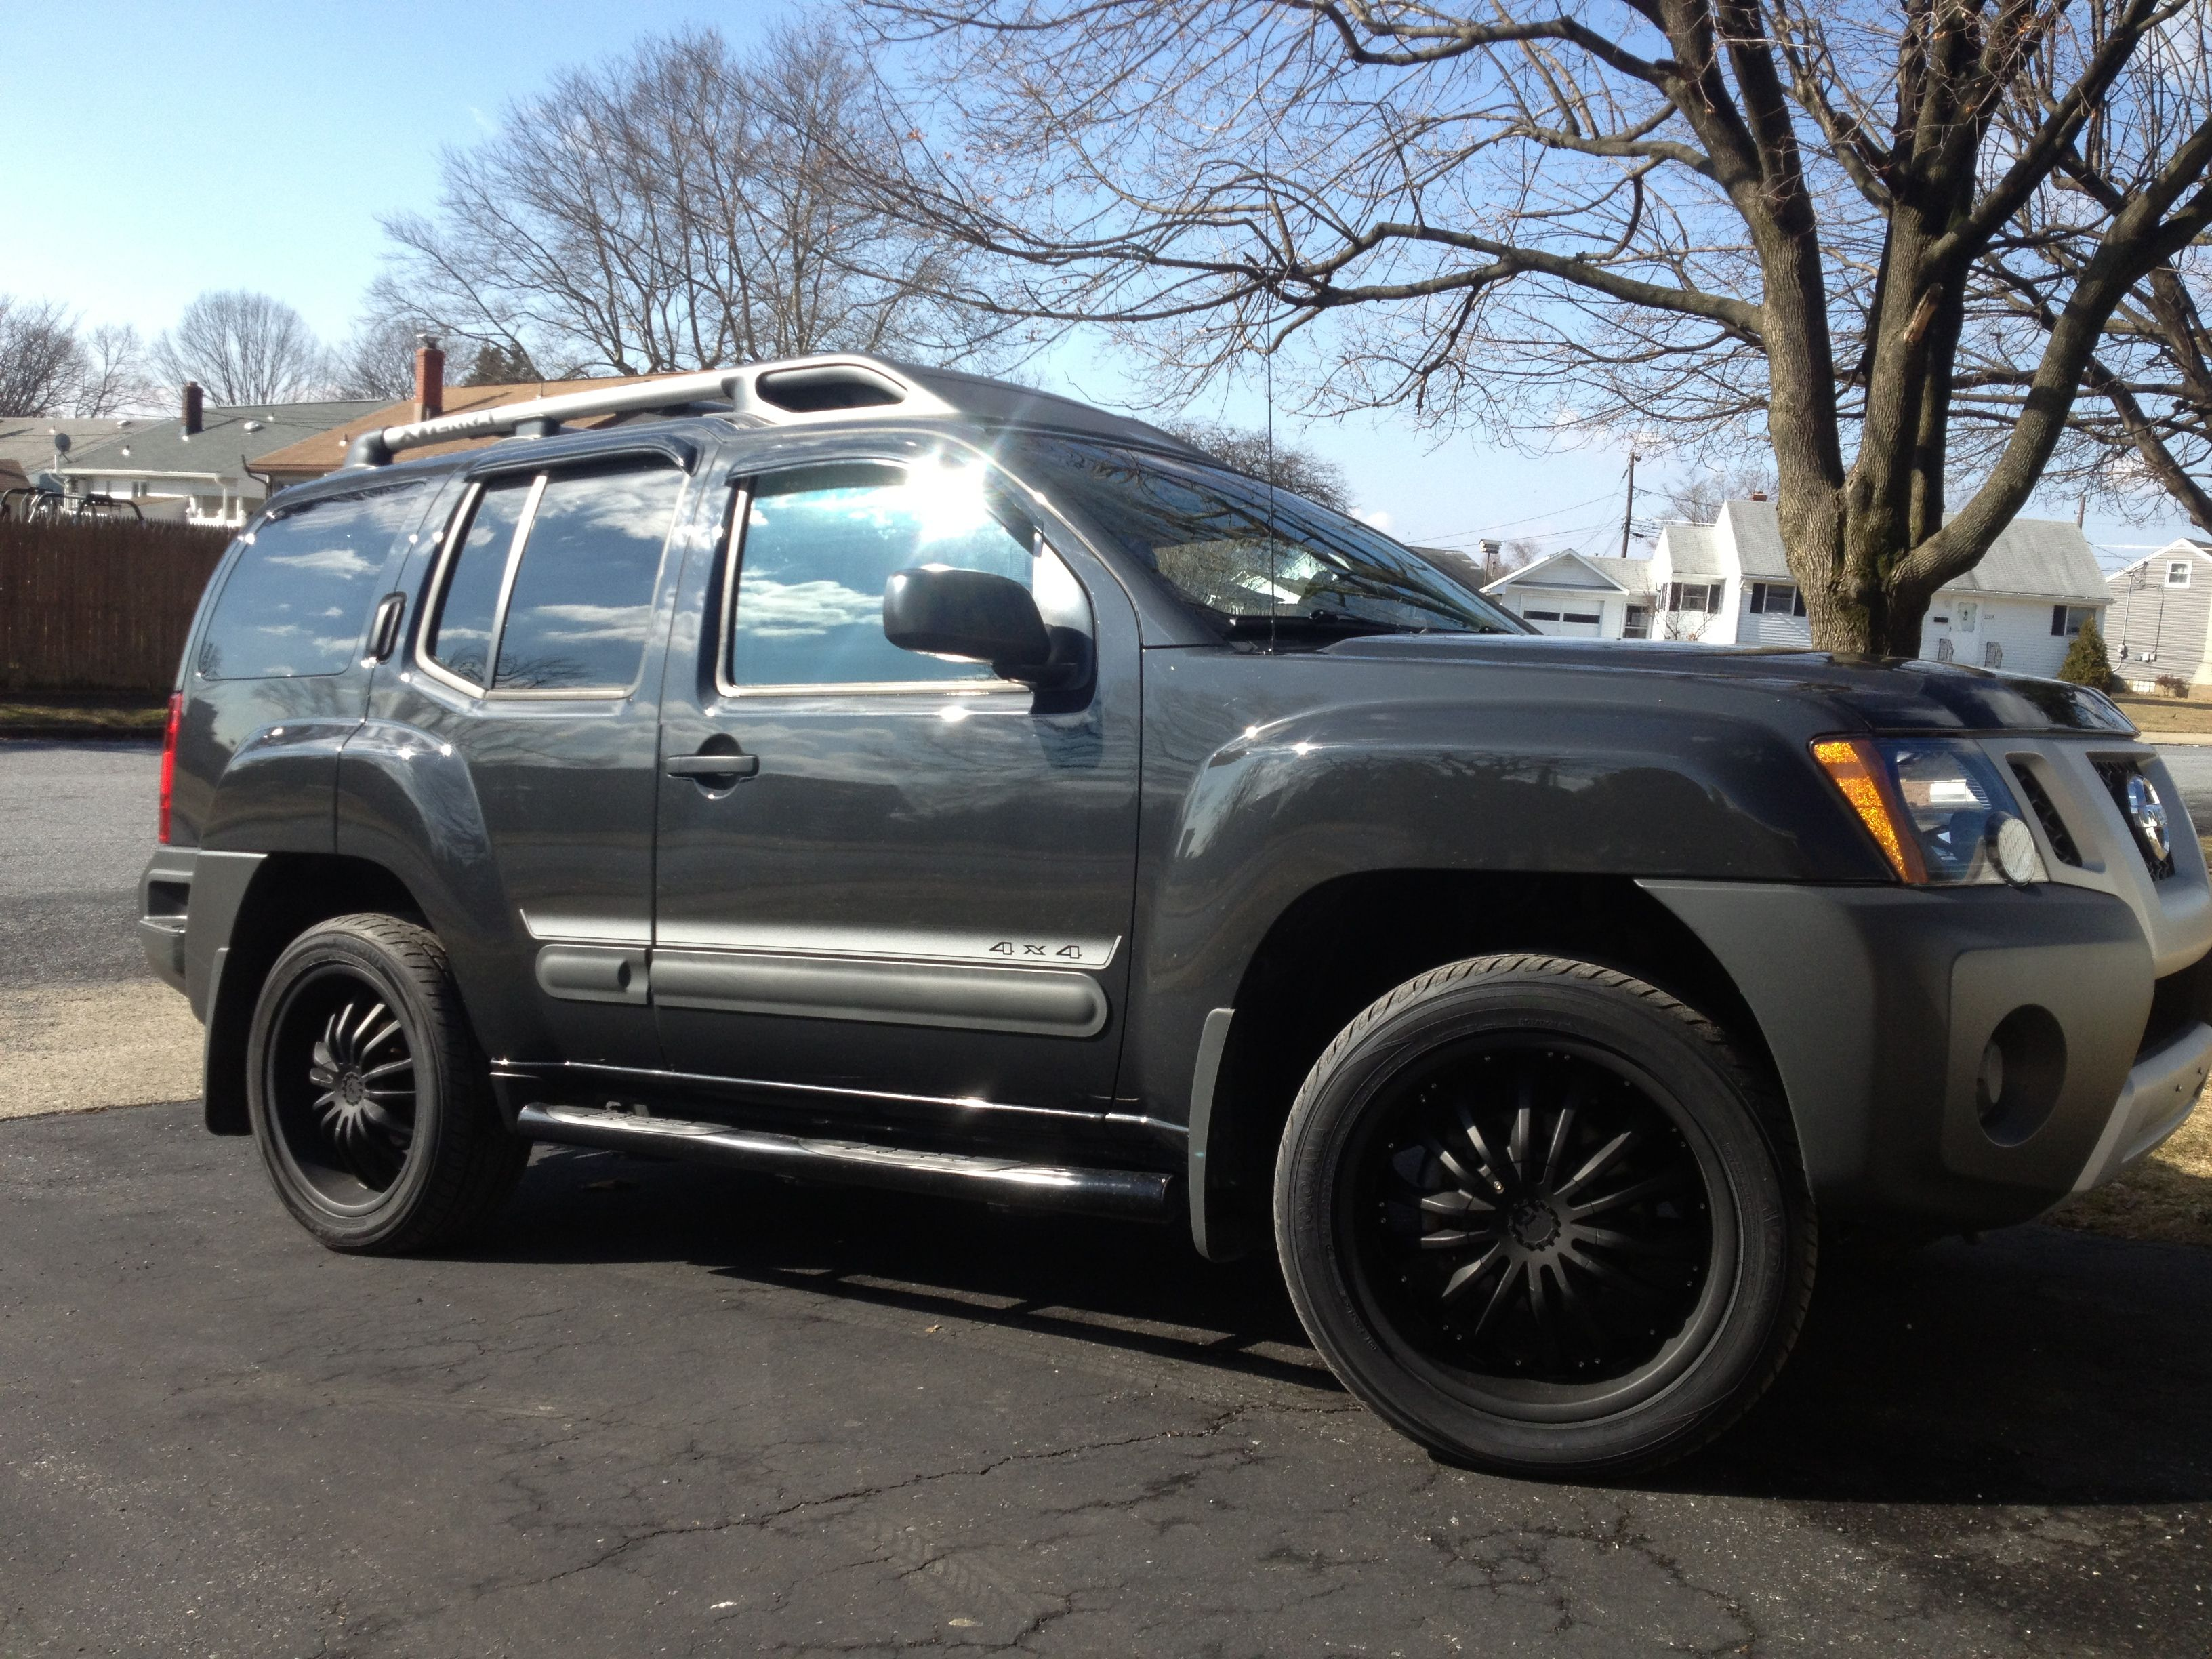 My Suv Nissan Xterra Hooked Up With Rims Cars Nissan Xterra